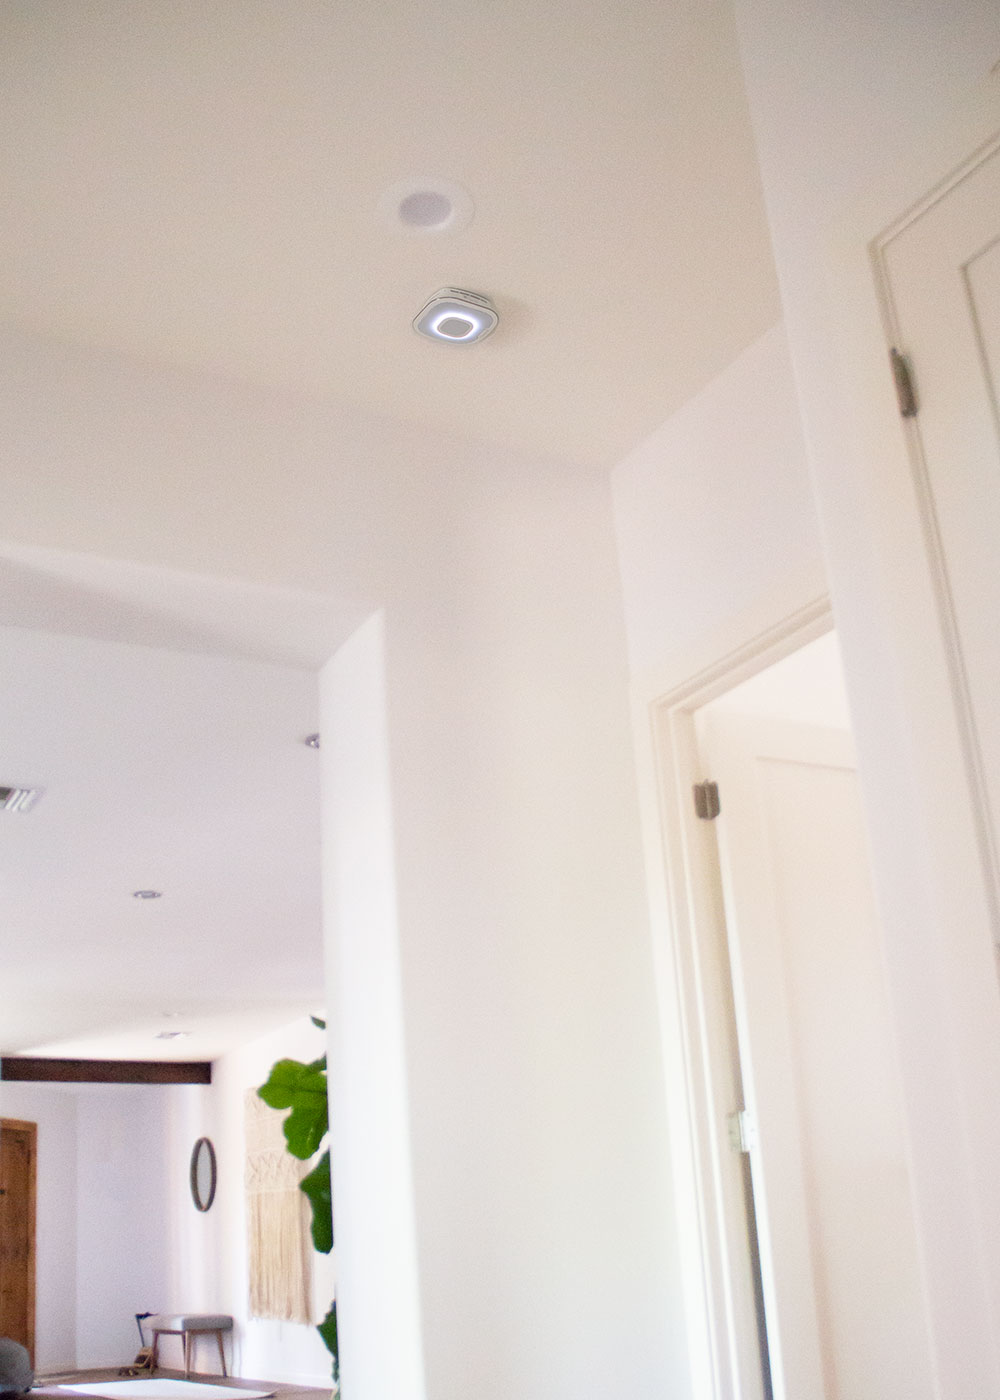 the onelink safe & sound smoke and carbon monoxide detector in our home. it also connects to our alexa! | thelovedesignedlife.com #ONELINKSTORY #smarthome #smokedetector #family #sponsored